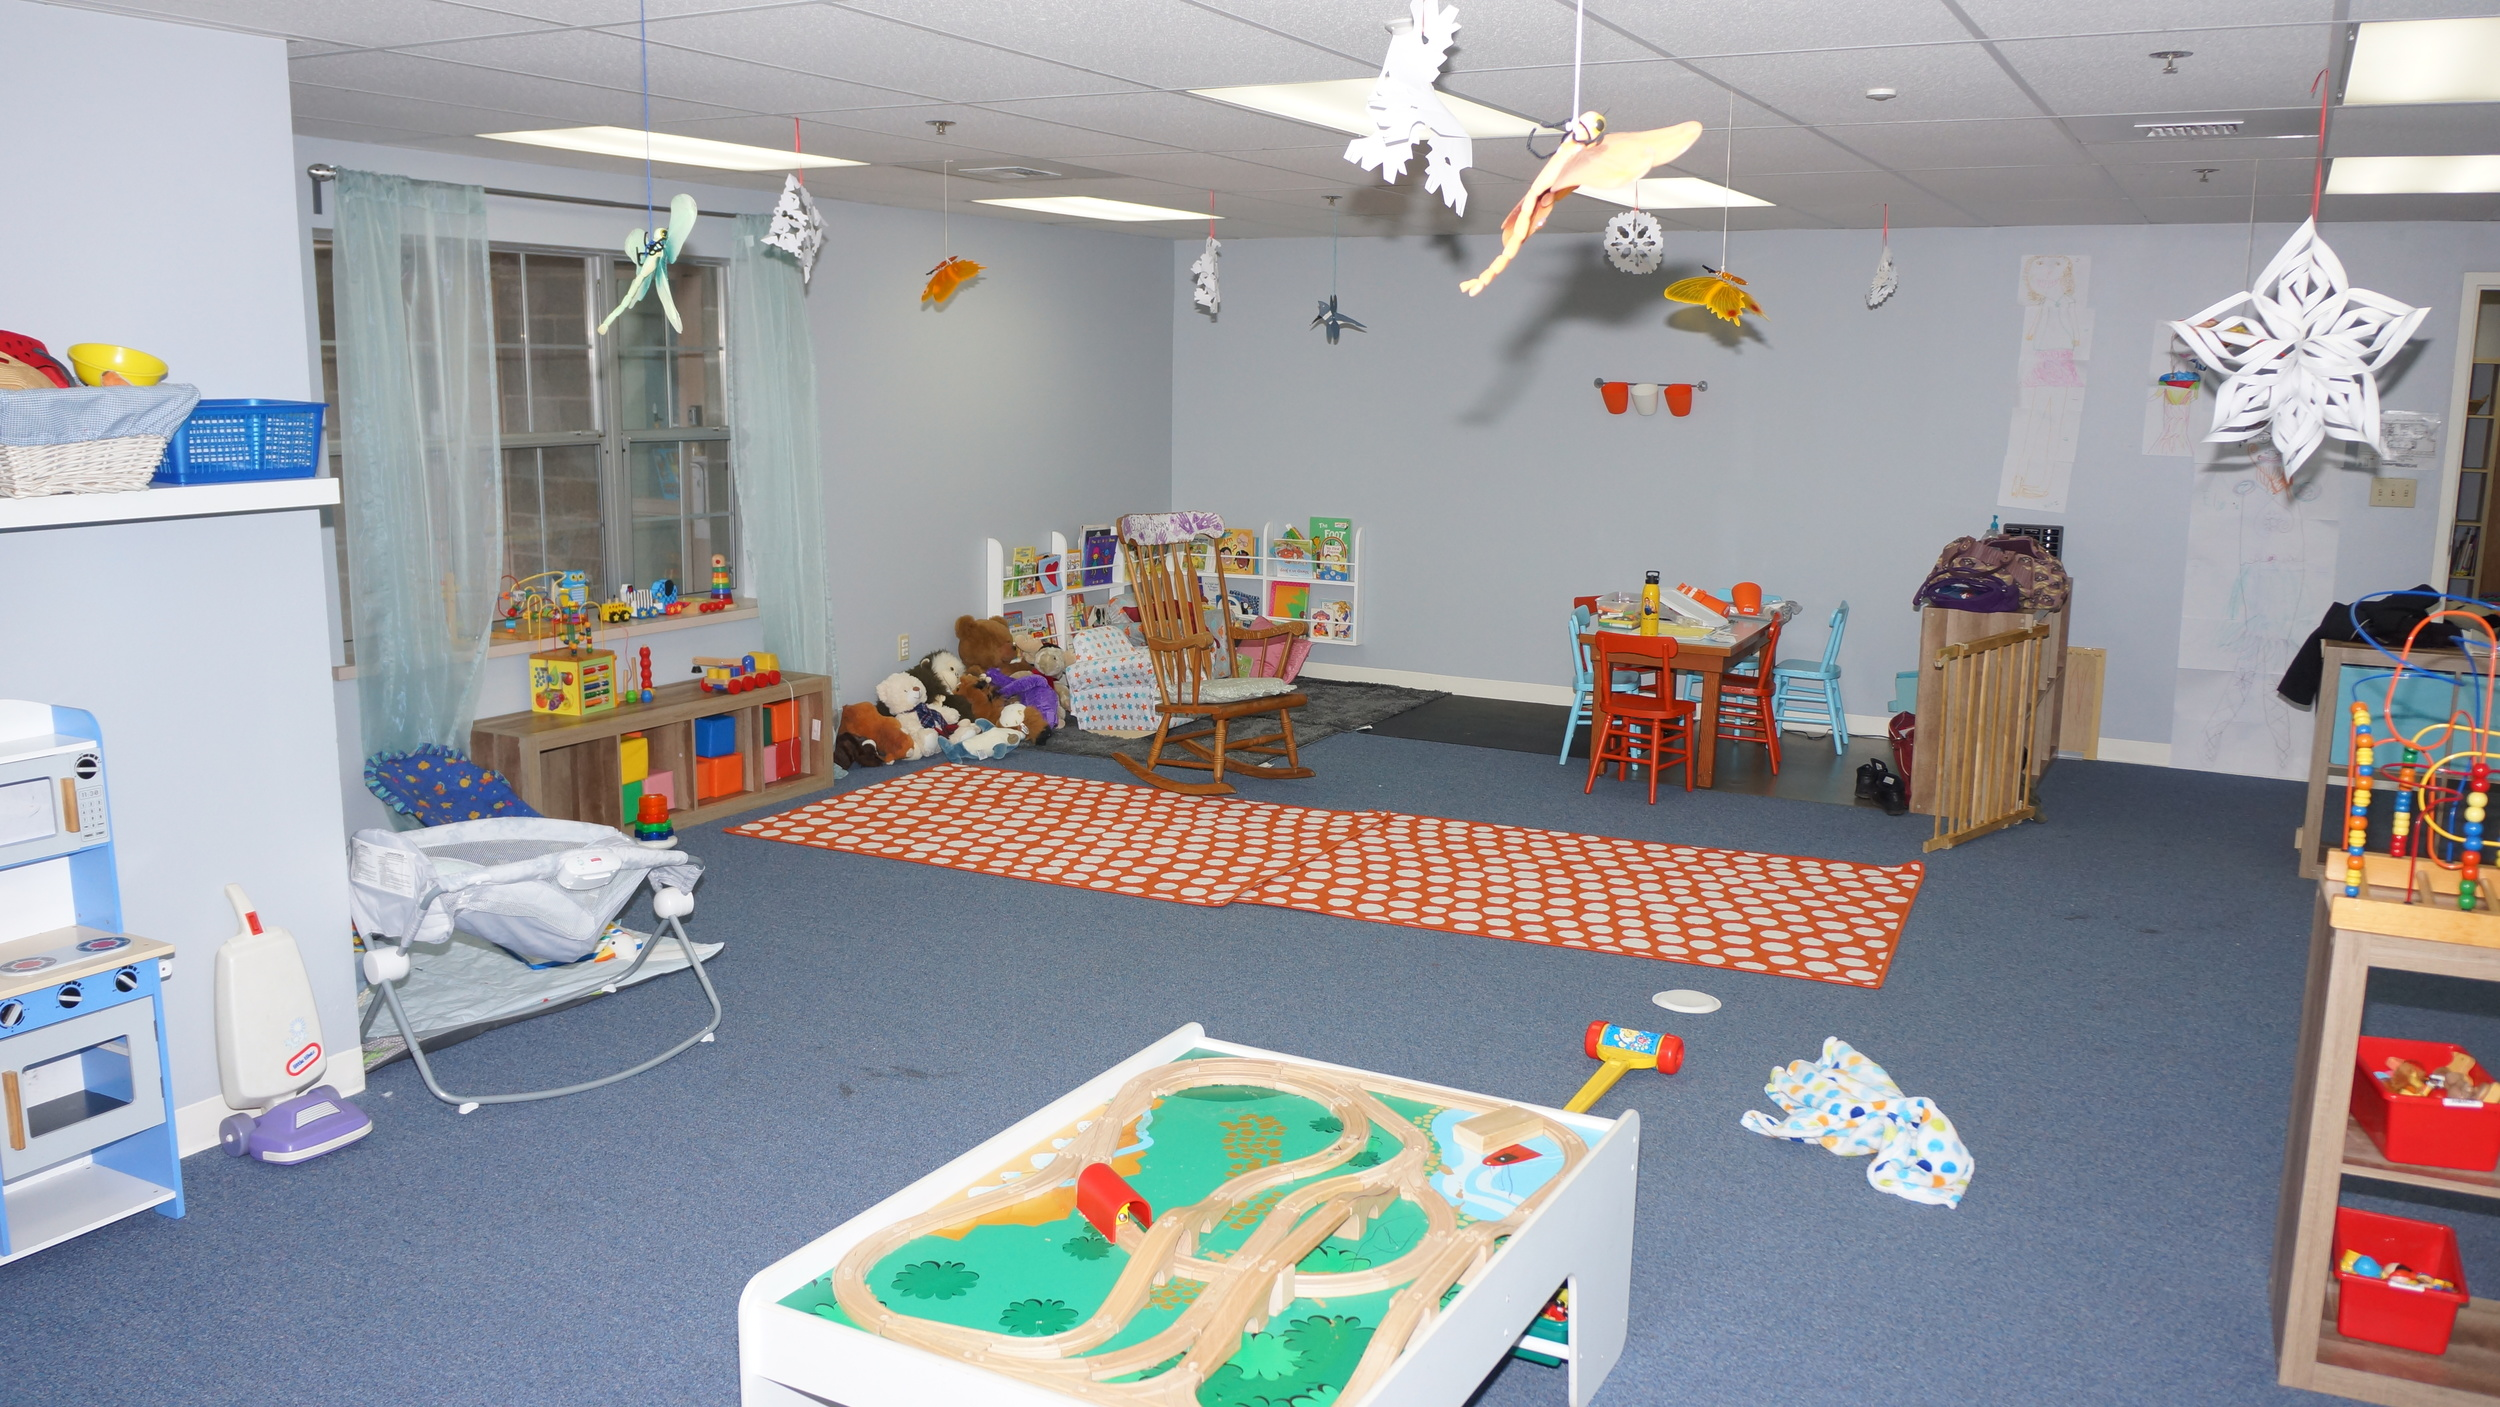 The play area of St. Paul's nursery in Room B21